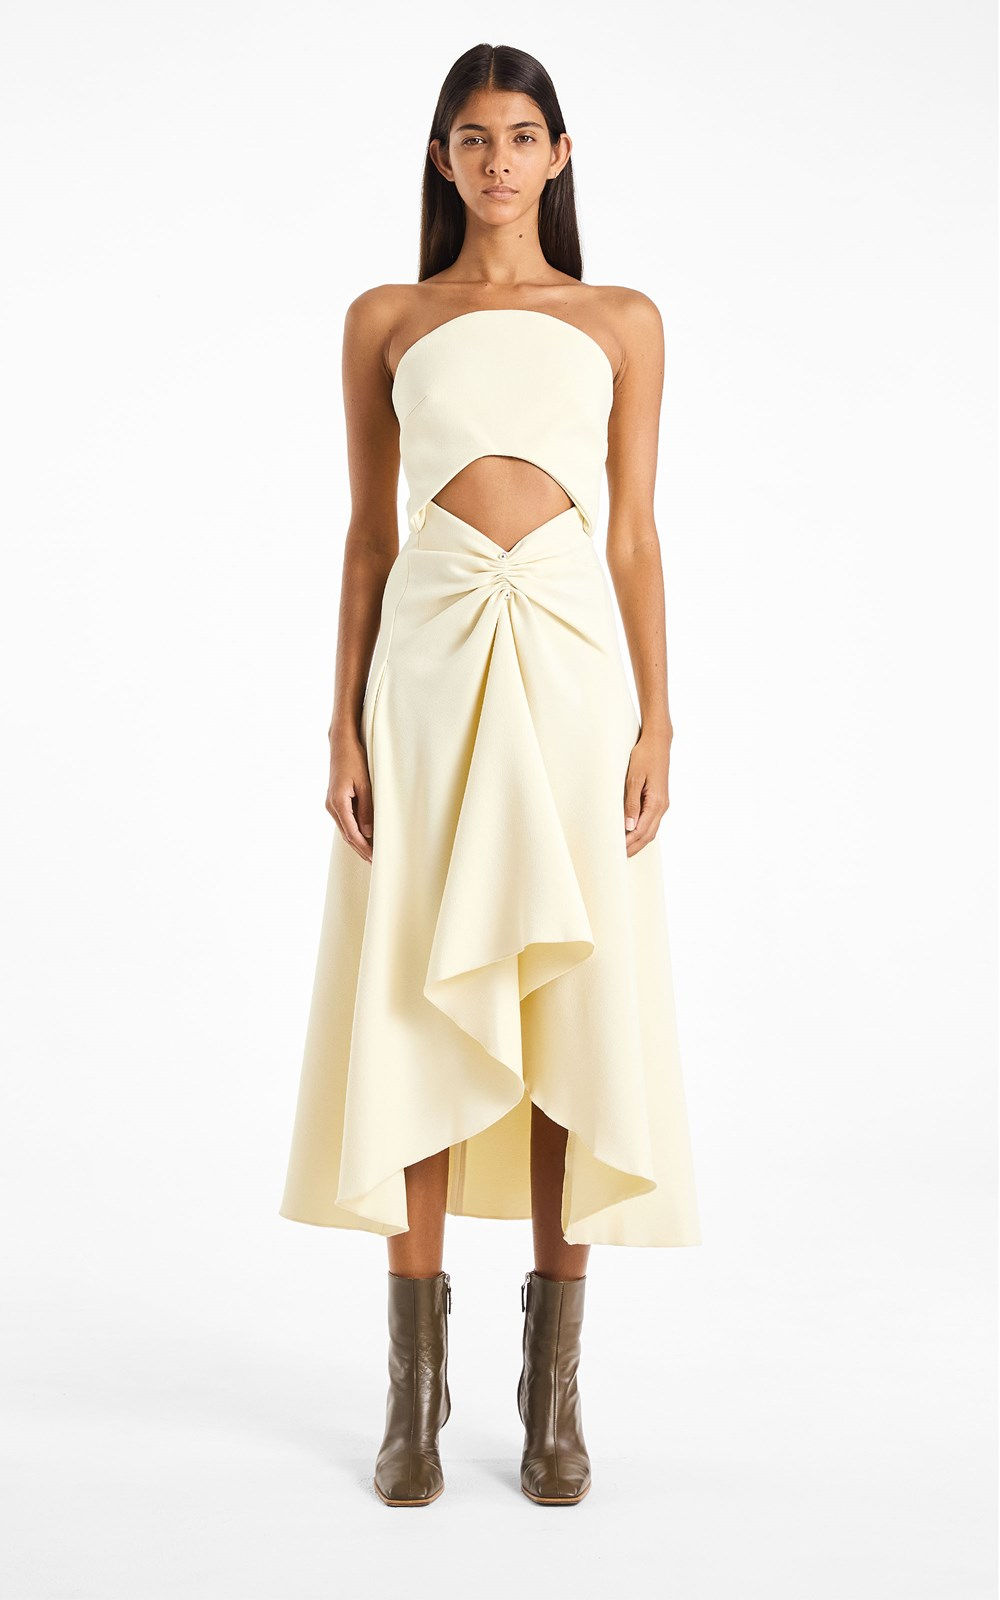 PIERCED CREPE CONCAVE DRESS by Dion Lee, available on dionlee.com for AUD1490 Kylie Jenner Dress SIMILAR PRODUCT